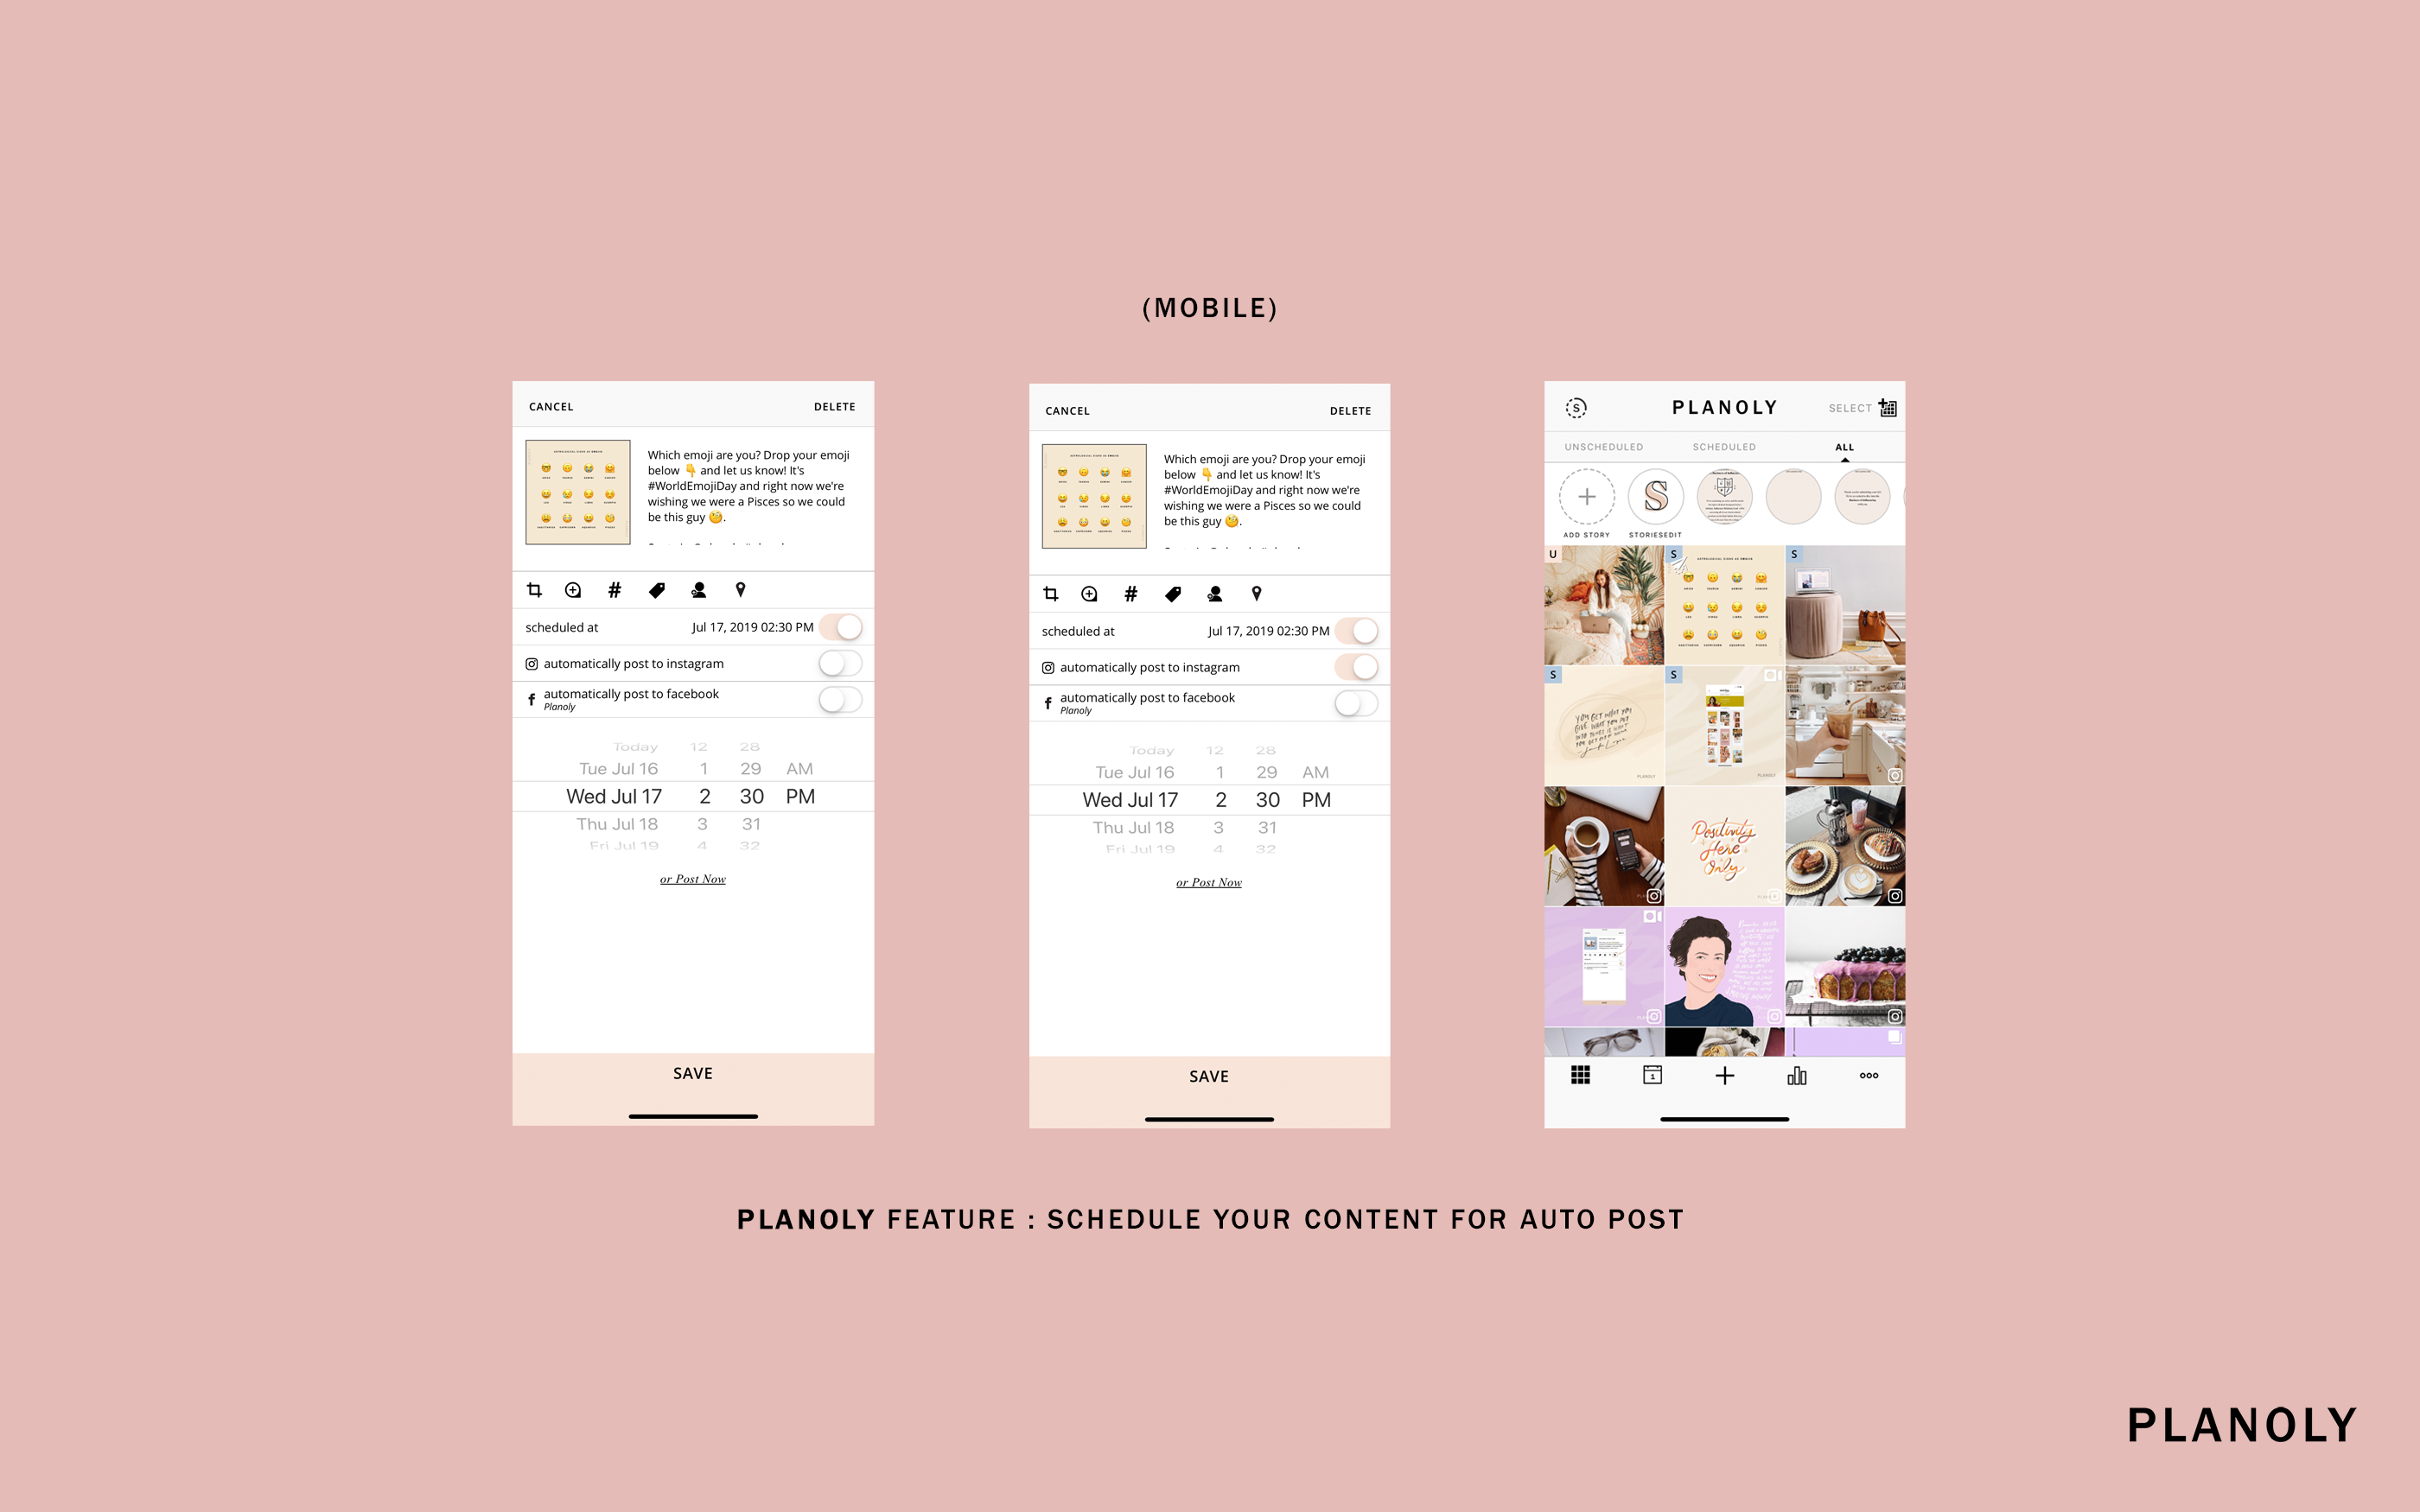 Tips for Auto-Posting on PLANOLY for Influencers and Small Businesses